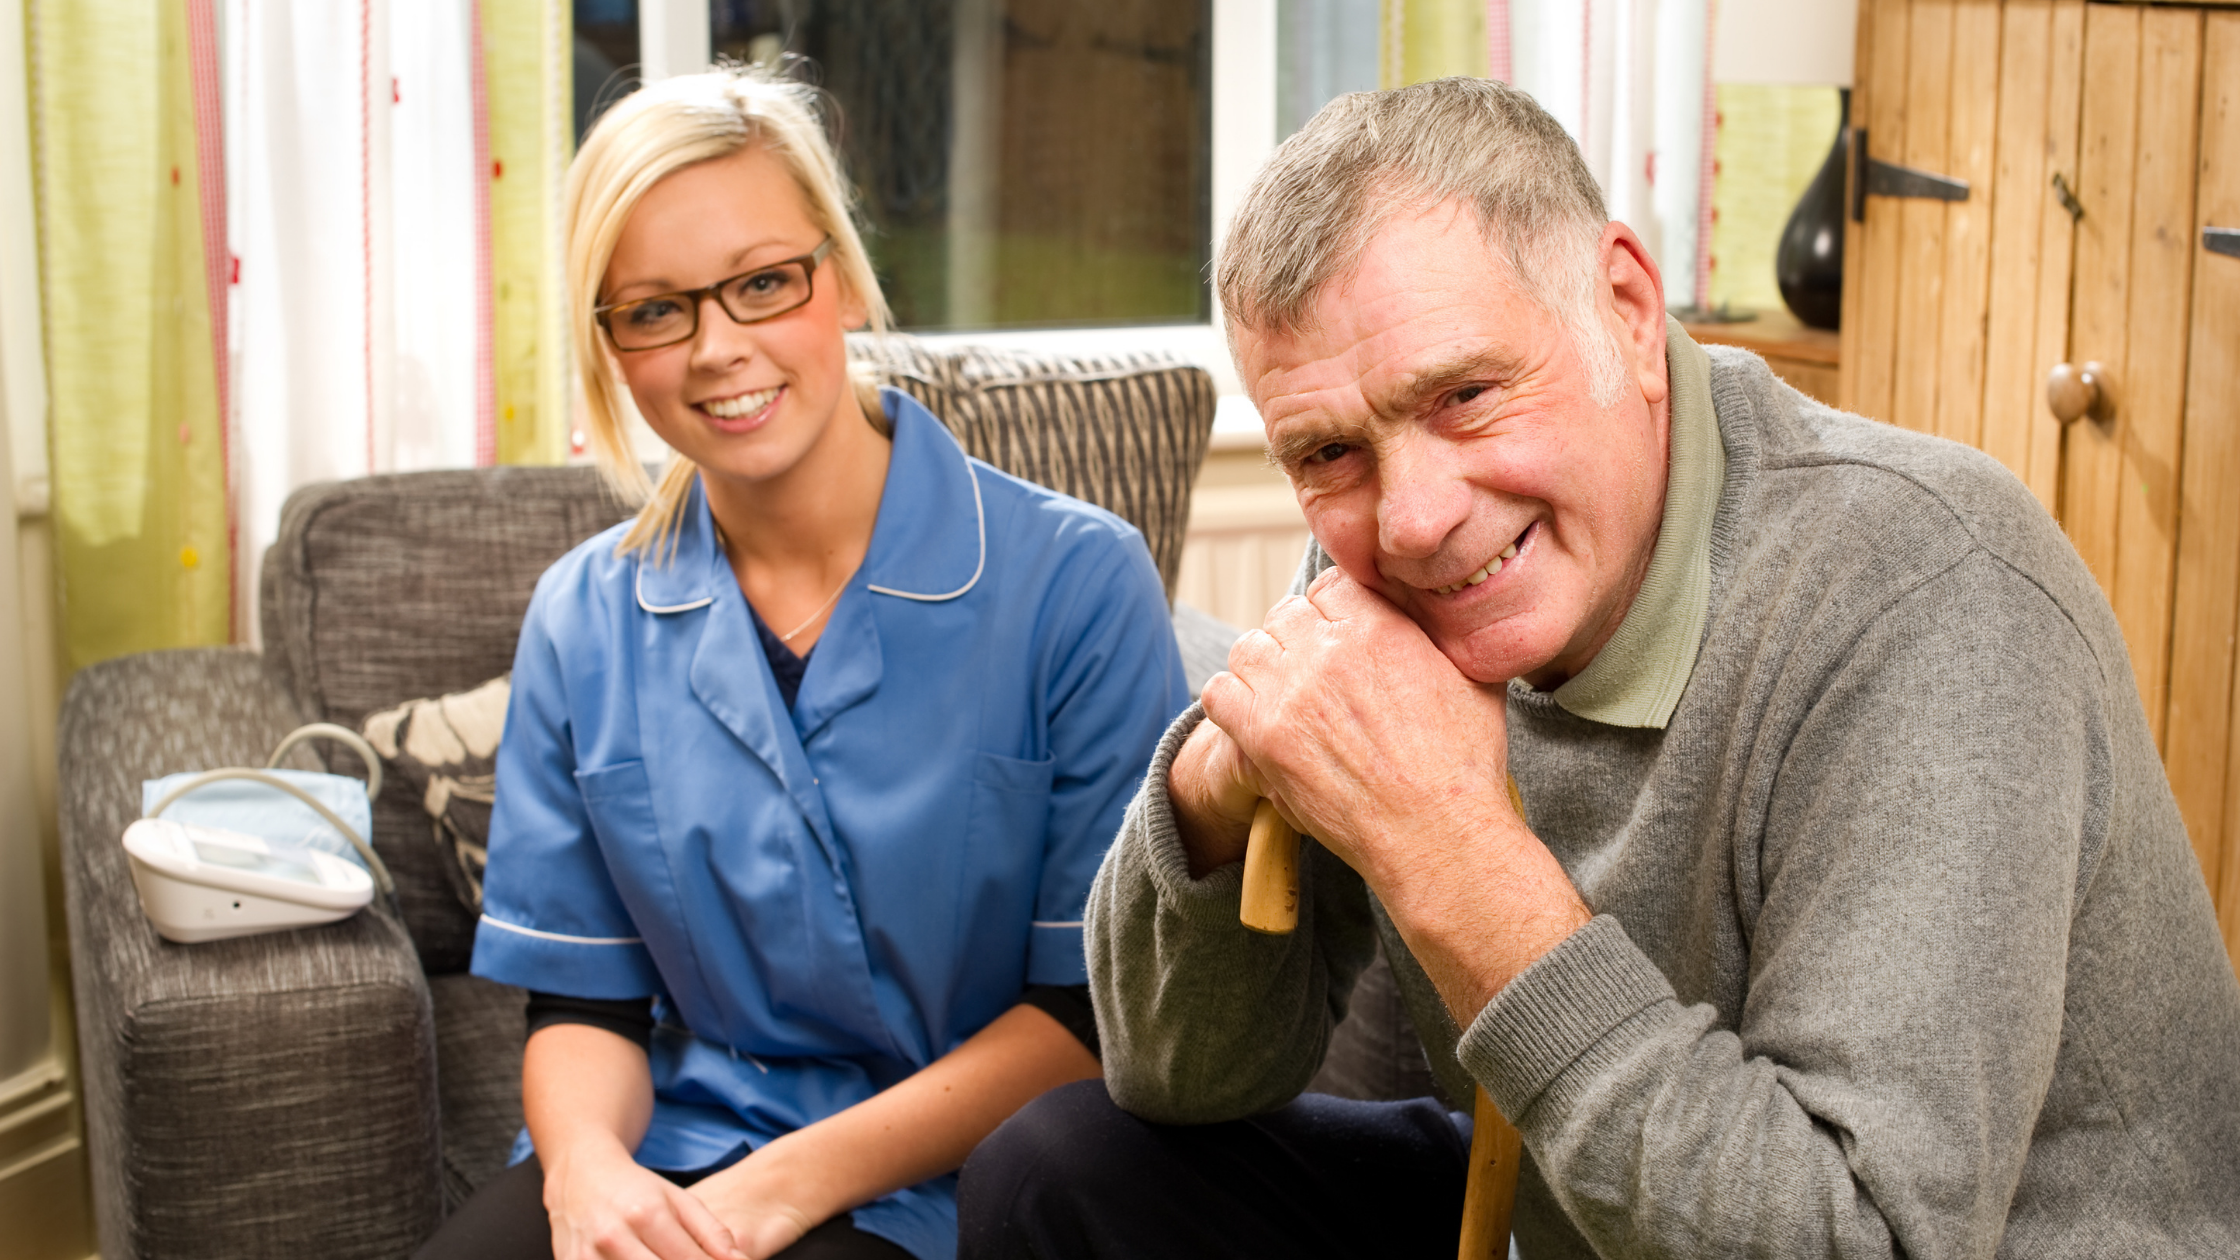 Woman in blue tabard sits with a man in his home, he is leaning on a cane. boh are smiling